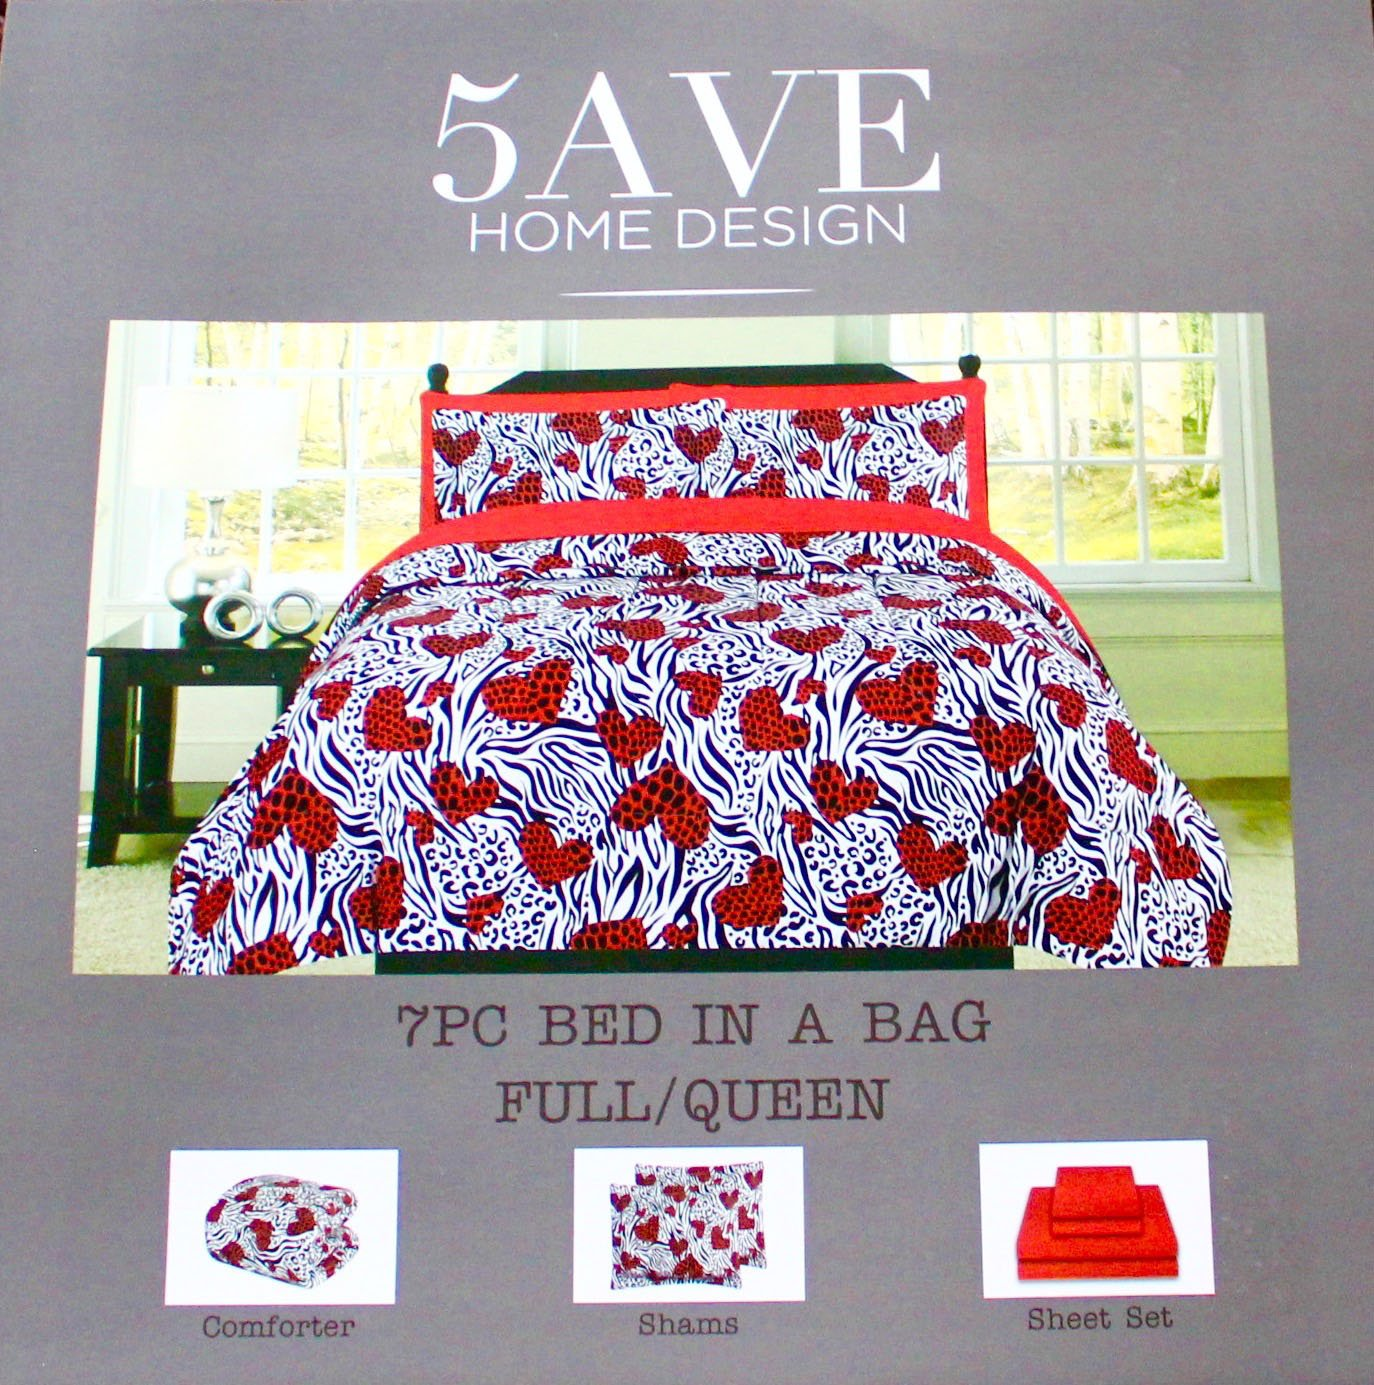 5AVE Home Design 7pc Safari Zebra Cheetah Hearts Red Black & White Queen Size Comforter Set with Sheet Set